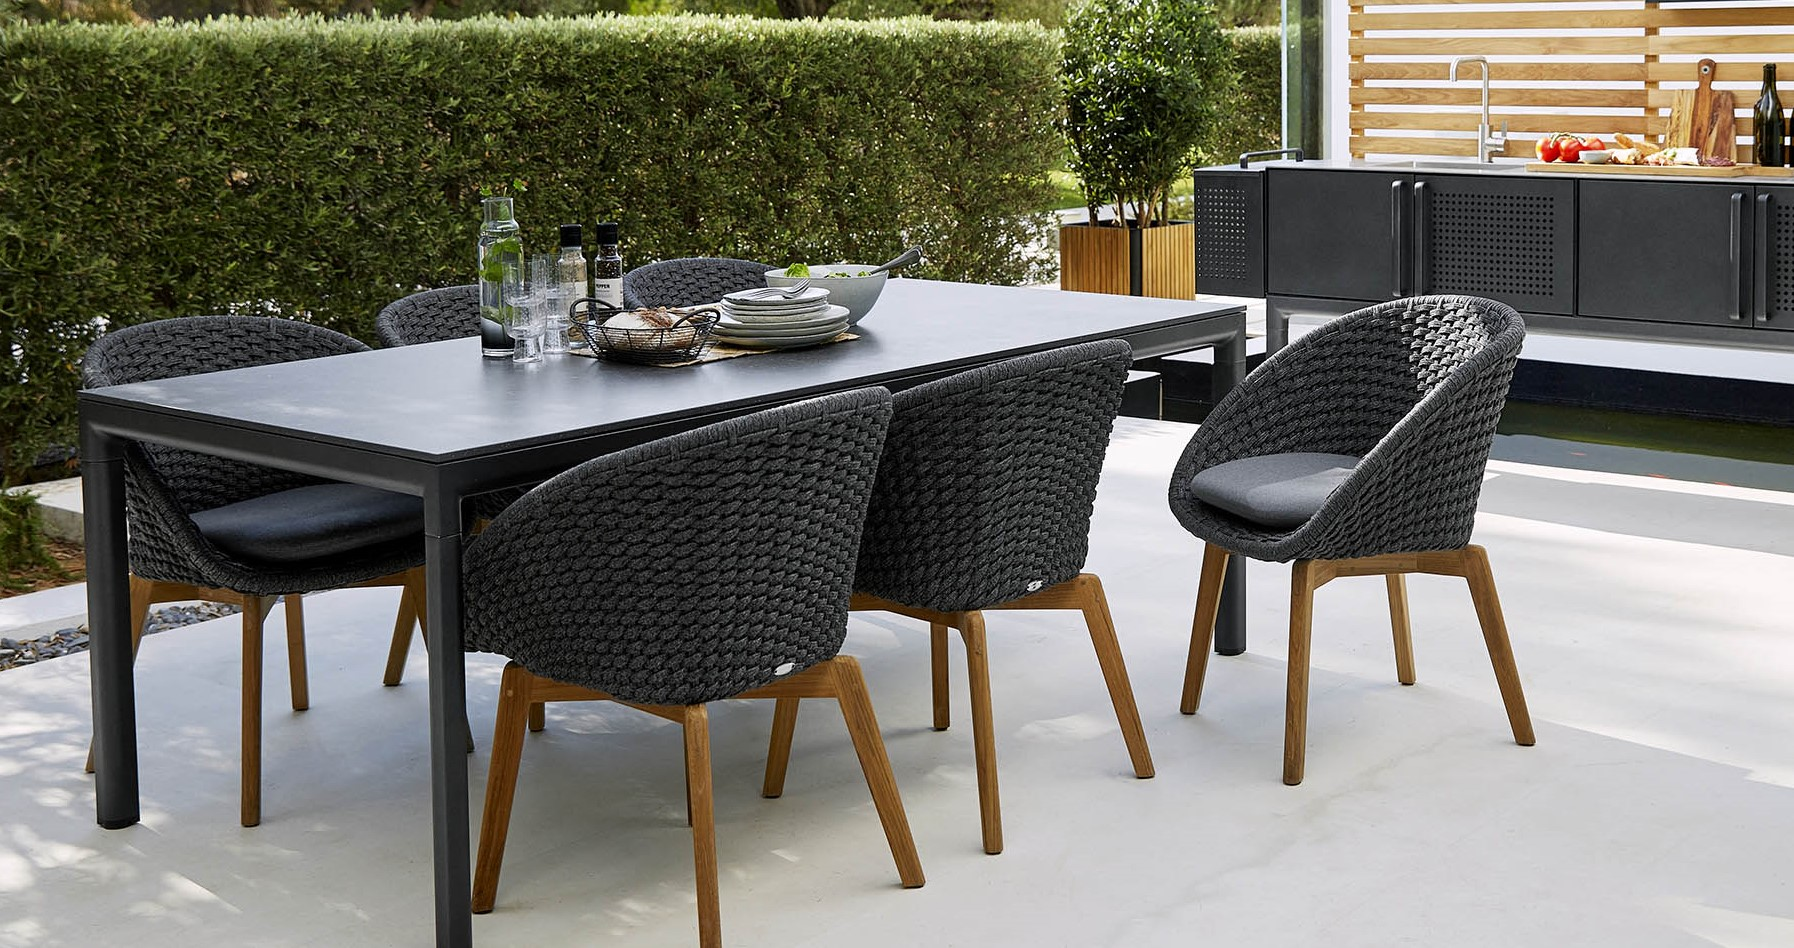 cane-line-peacock-dining-chair-lifestyle.jpg